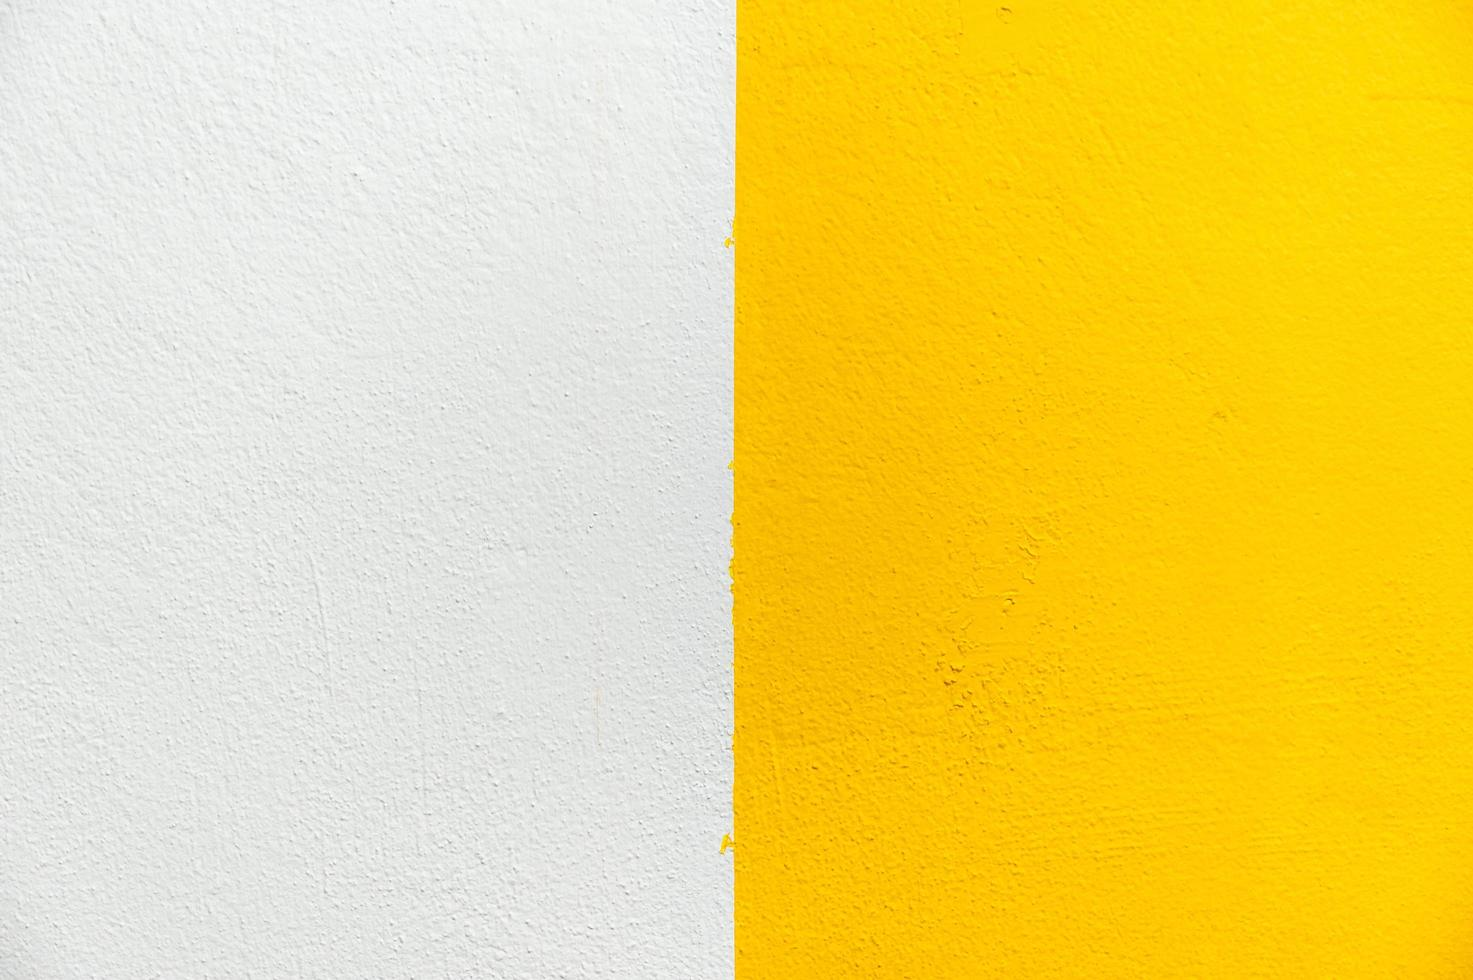 Blurred White and Yellow stucco wall background. photo